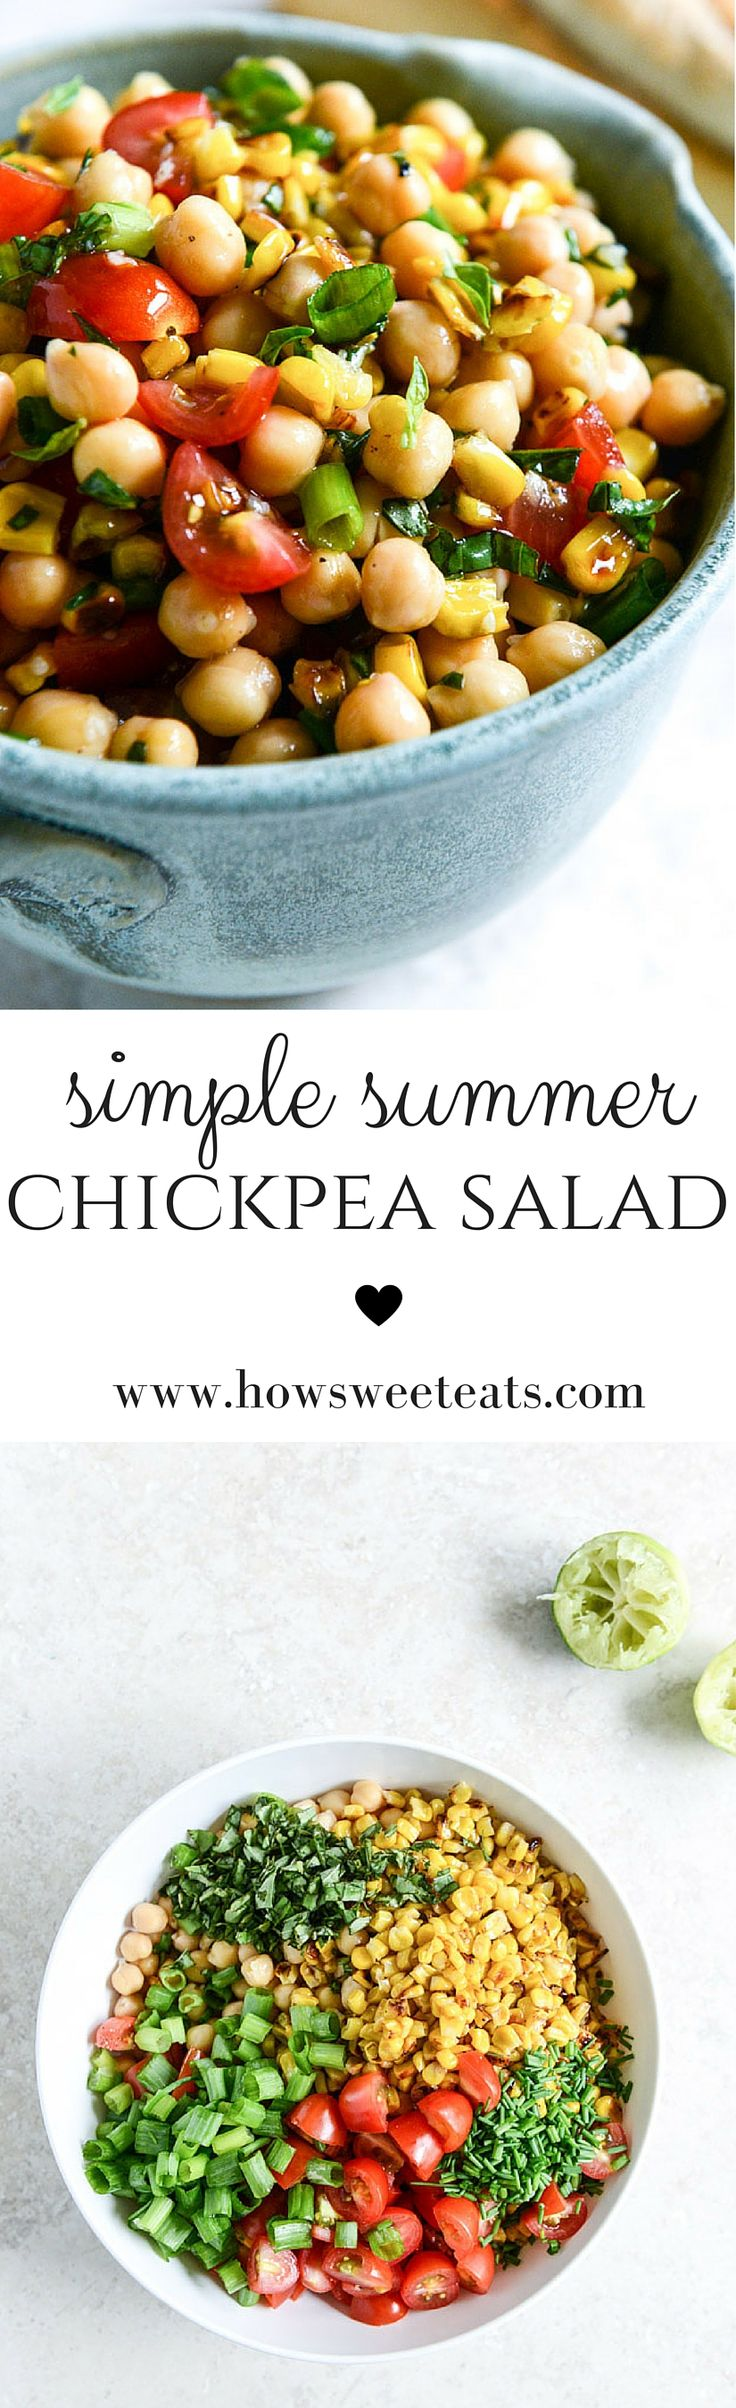 Summer Chickpea Salad with Honey Garlic Lime Vinaigrette by @howsweeteats I howsweeteats.com